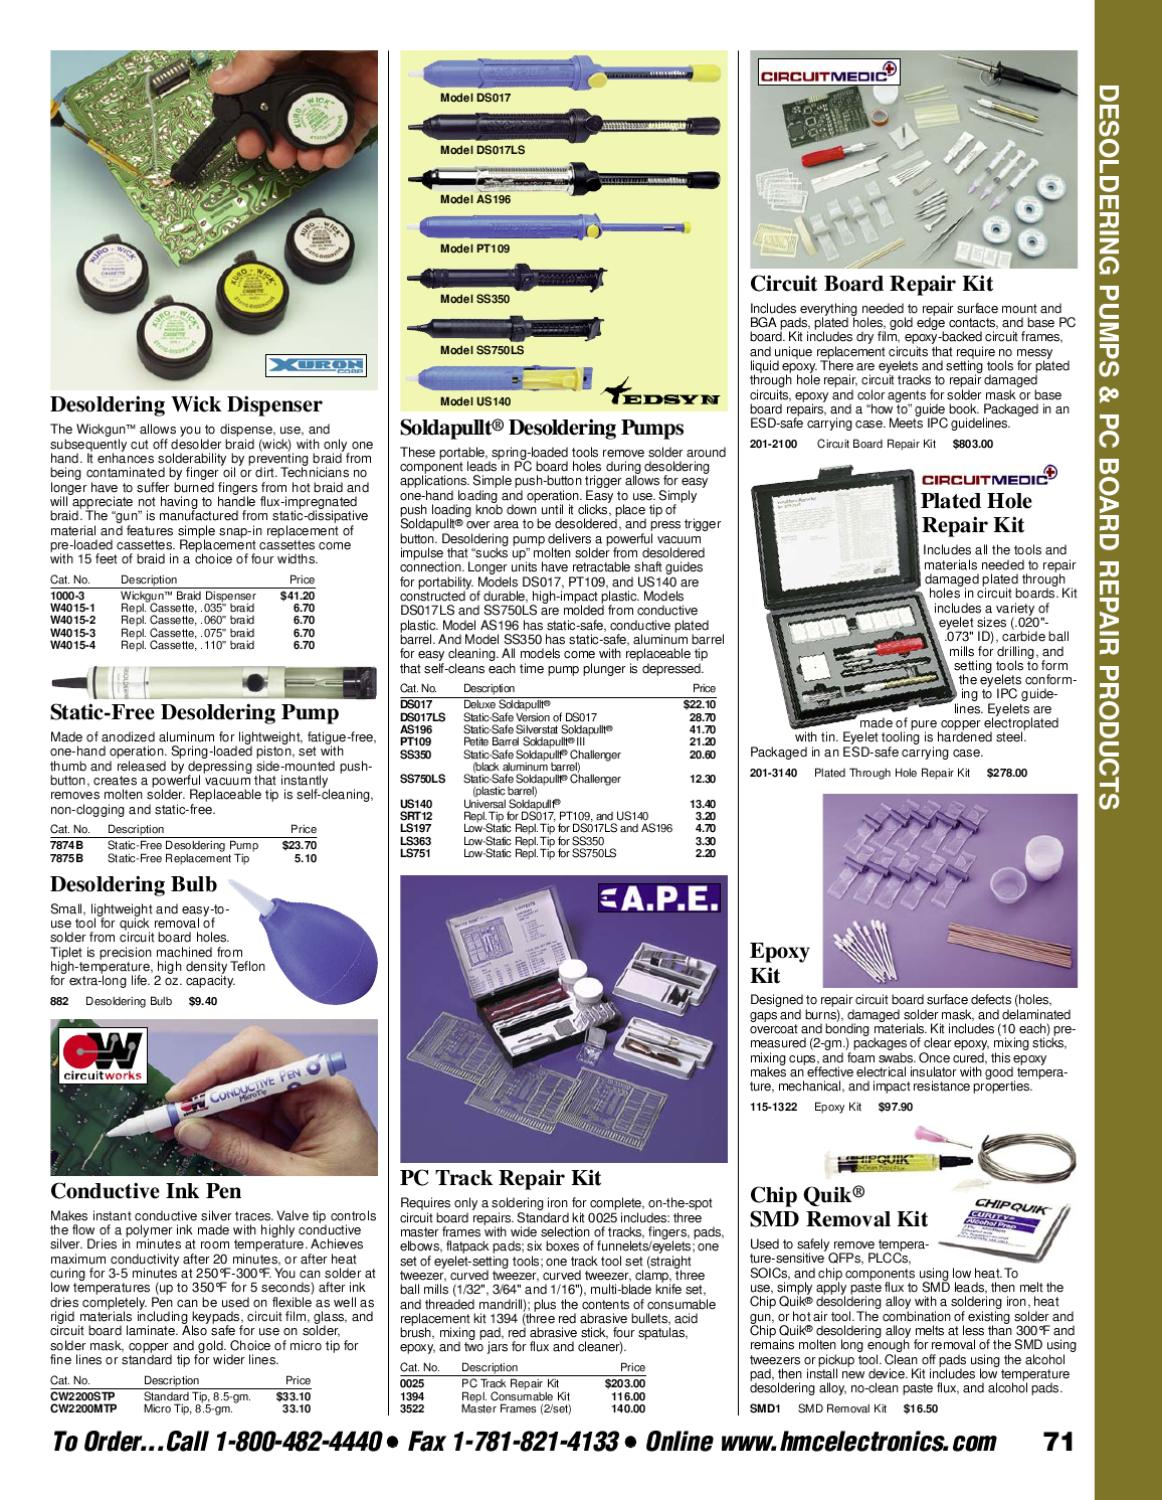 Hmc Electronics Product Catalog By Jon Schwartz Issuu Professional Circuit Board Repair Kit In Esdsafe Case Tool Kits